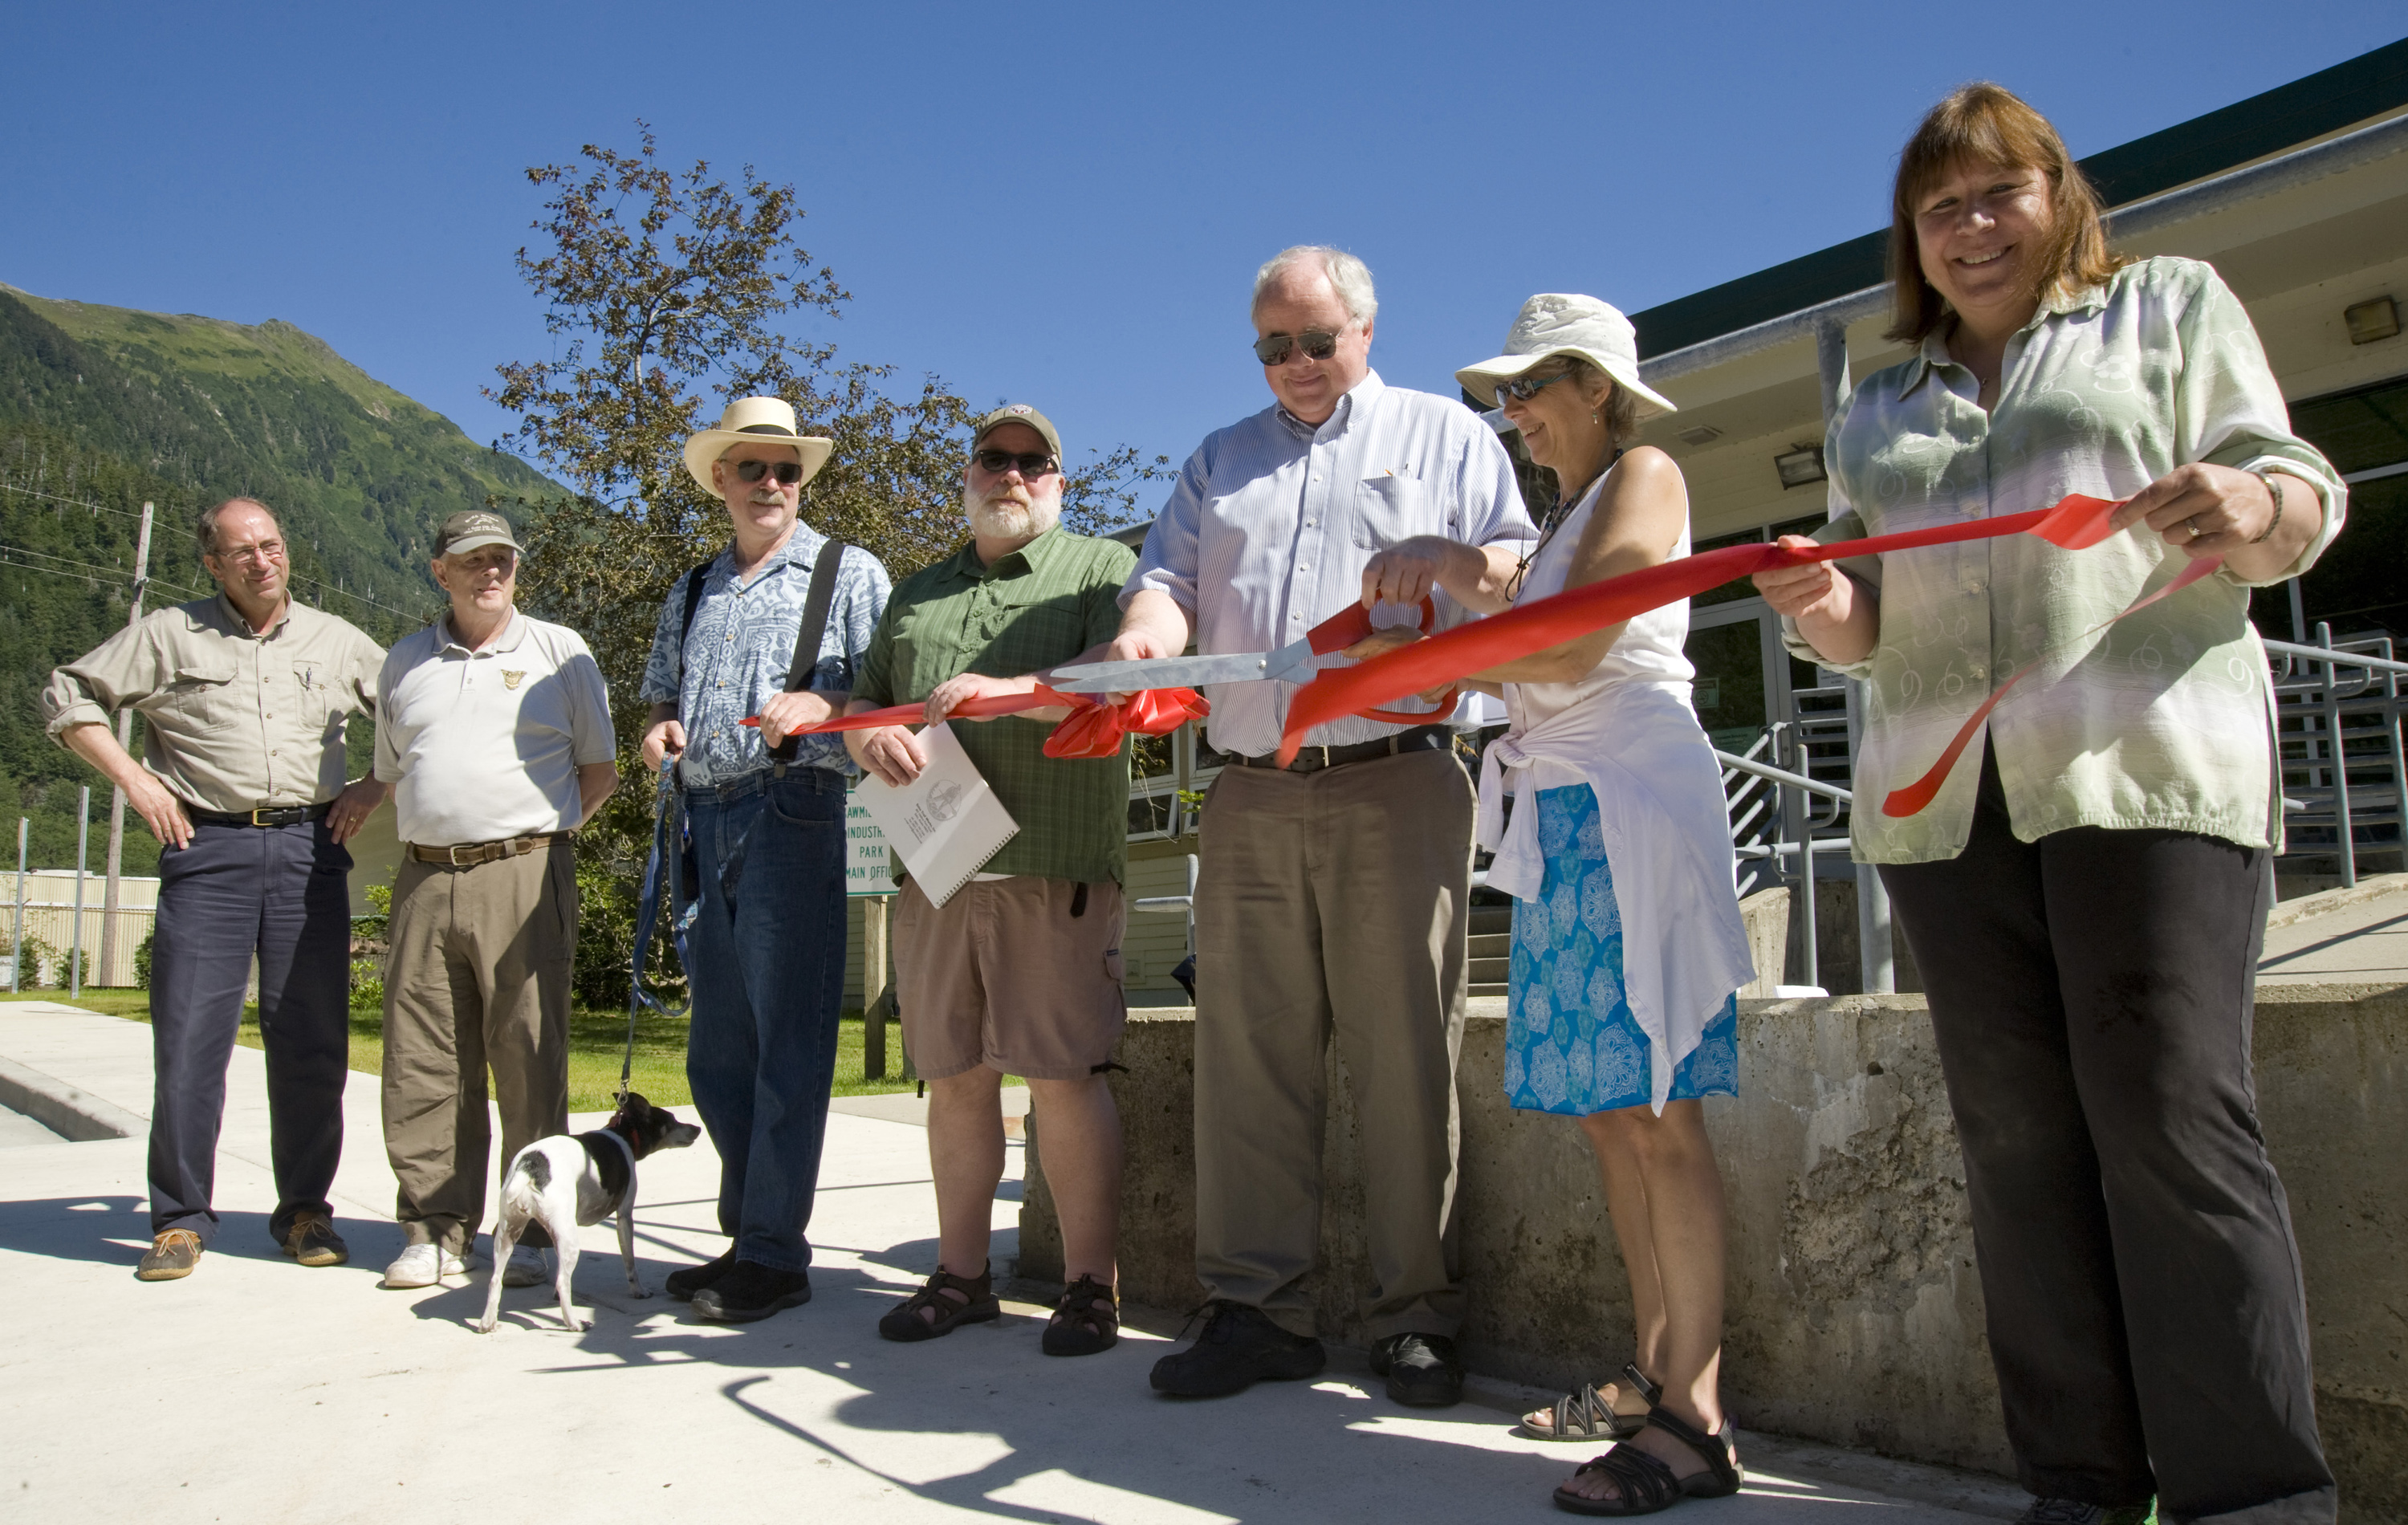 Senator Stedman and his dog Coho participate in the ribbon cutting at the Sawmill Creek Road Completion Celebration.  Pictured from left to right are; DOT&PF Southeast Regional Director Al Clough, Gary Paxton, Senator Stedman, Brian Hanson, DOT&PF Commissioner Pat Kemp, Sitka Mayor Mim McConnell, and Deborah Lyons. (Photo courtesy of James Poulson, Daily Sitka Sentinel)